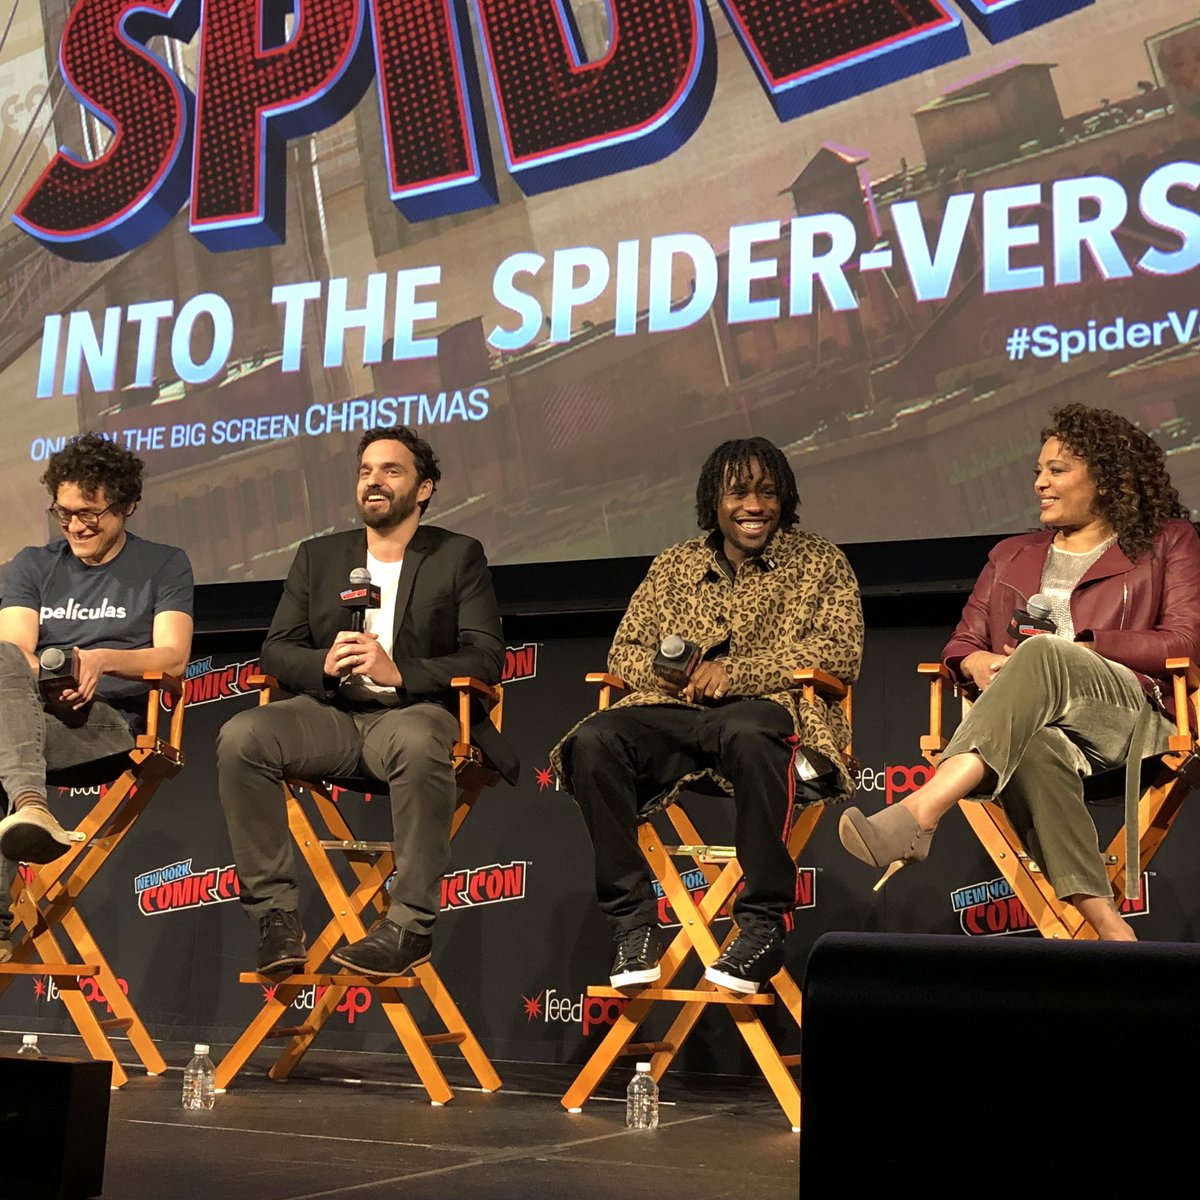 #NYCC enters the #SpiderVerse with the cast and filmmakers! Check out more from today on @SonyPictures' Instagram Story! https://t.co/82bpy8wKjQ